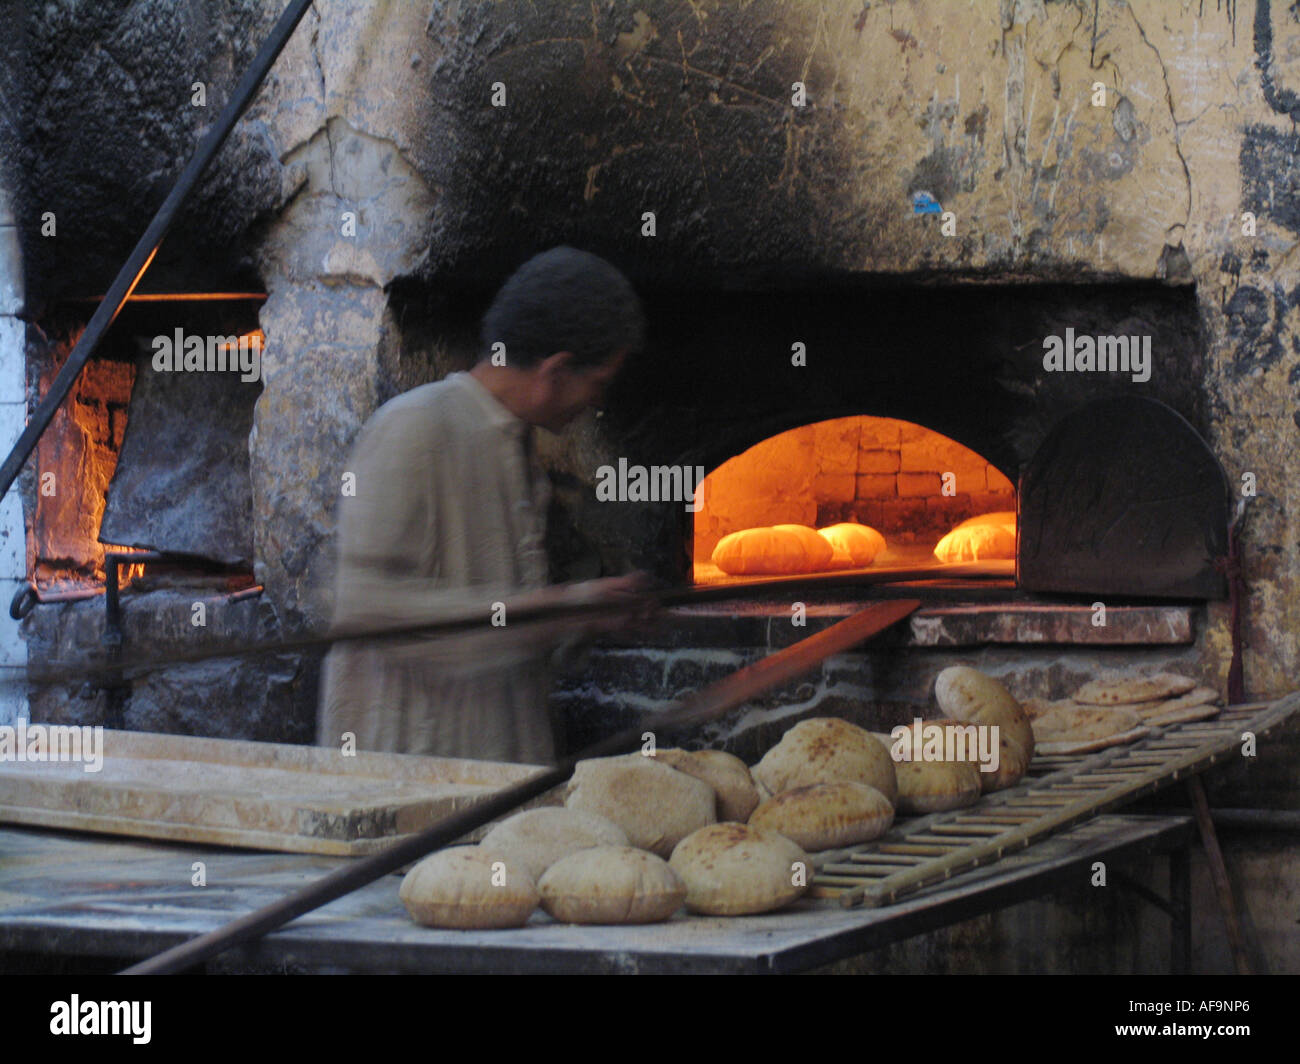 Bread Bakery With Stone Oven In Old Islamic Quarter Of Cairo Egypt Kairo